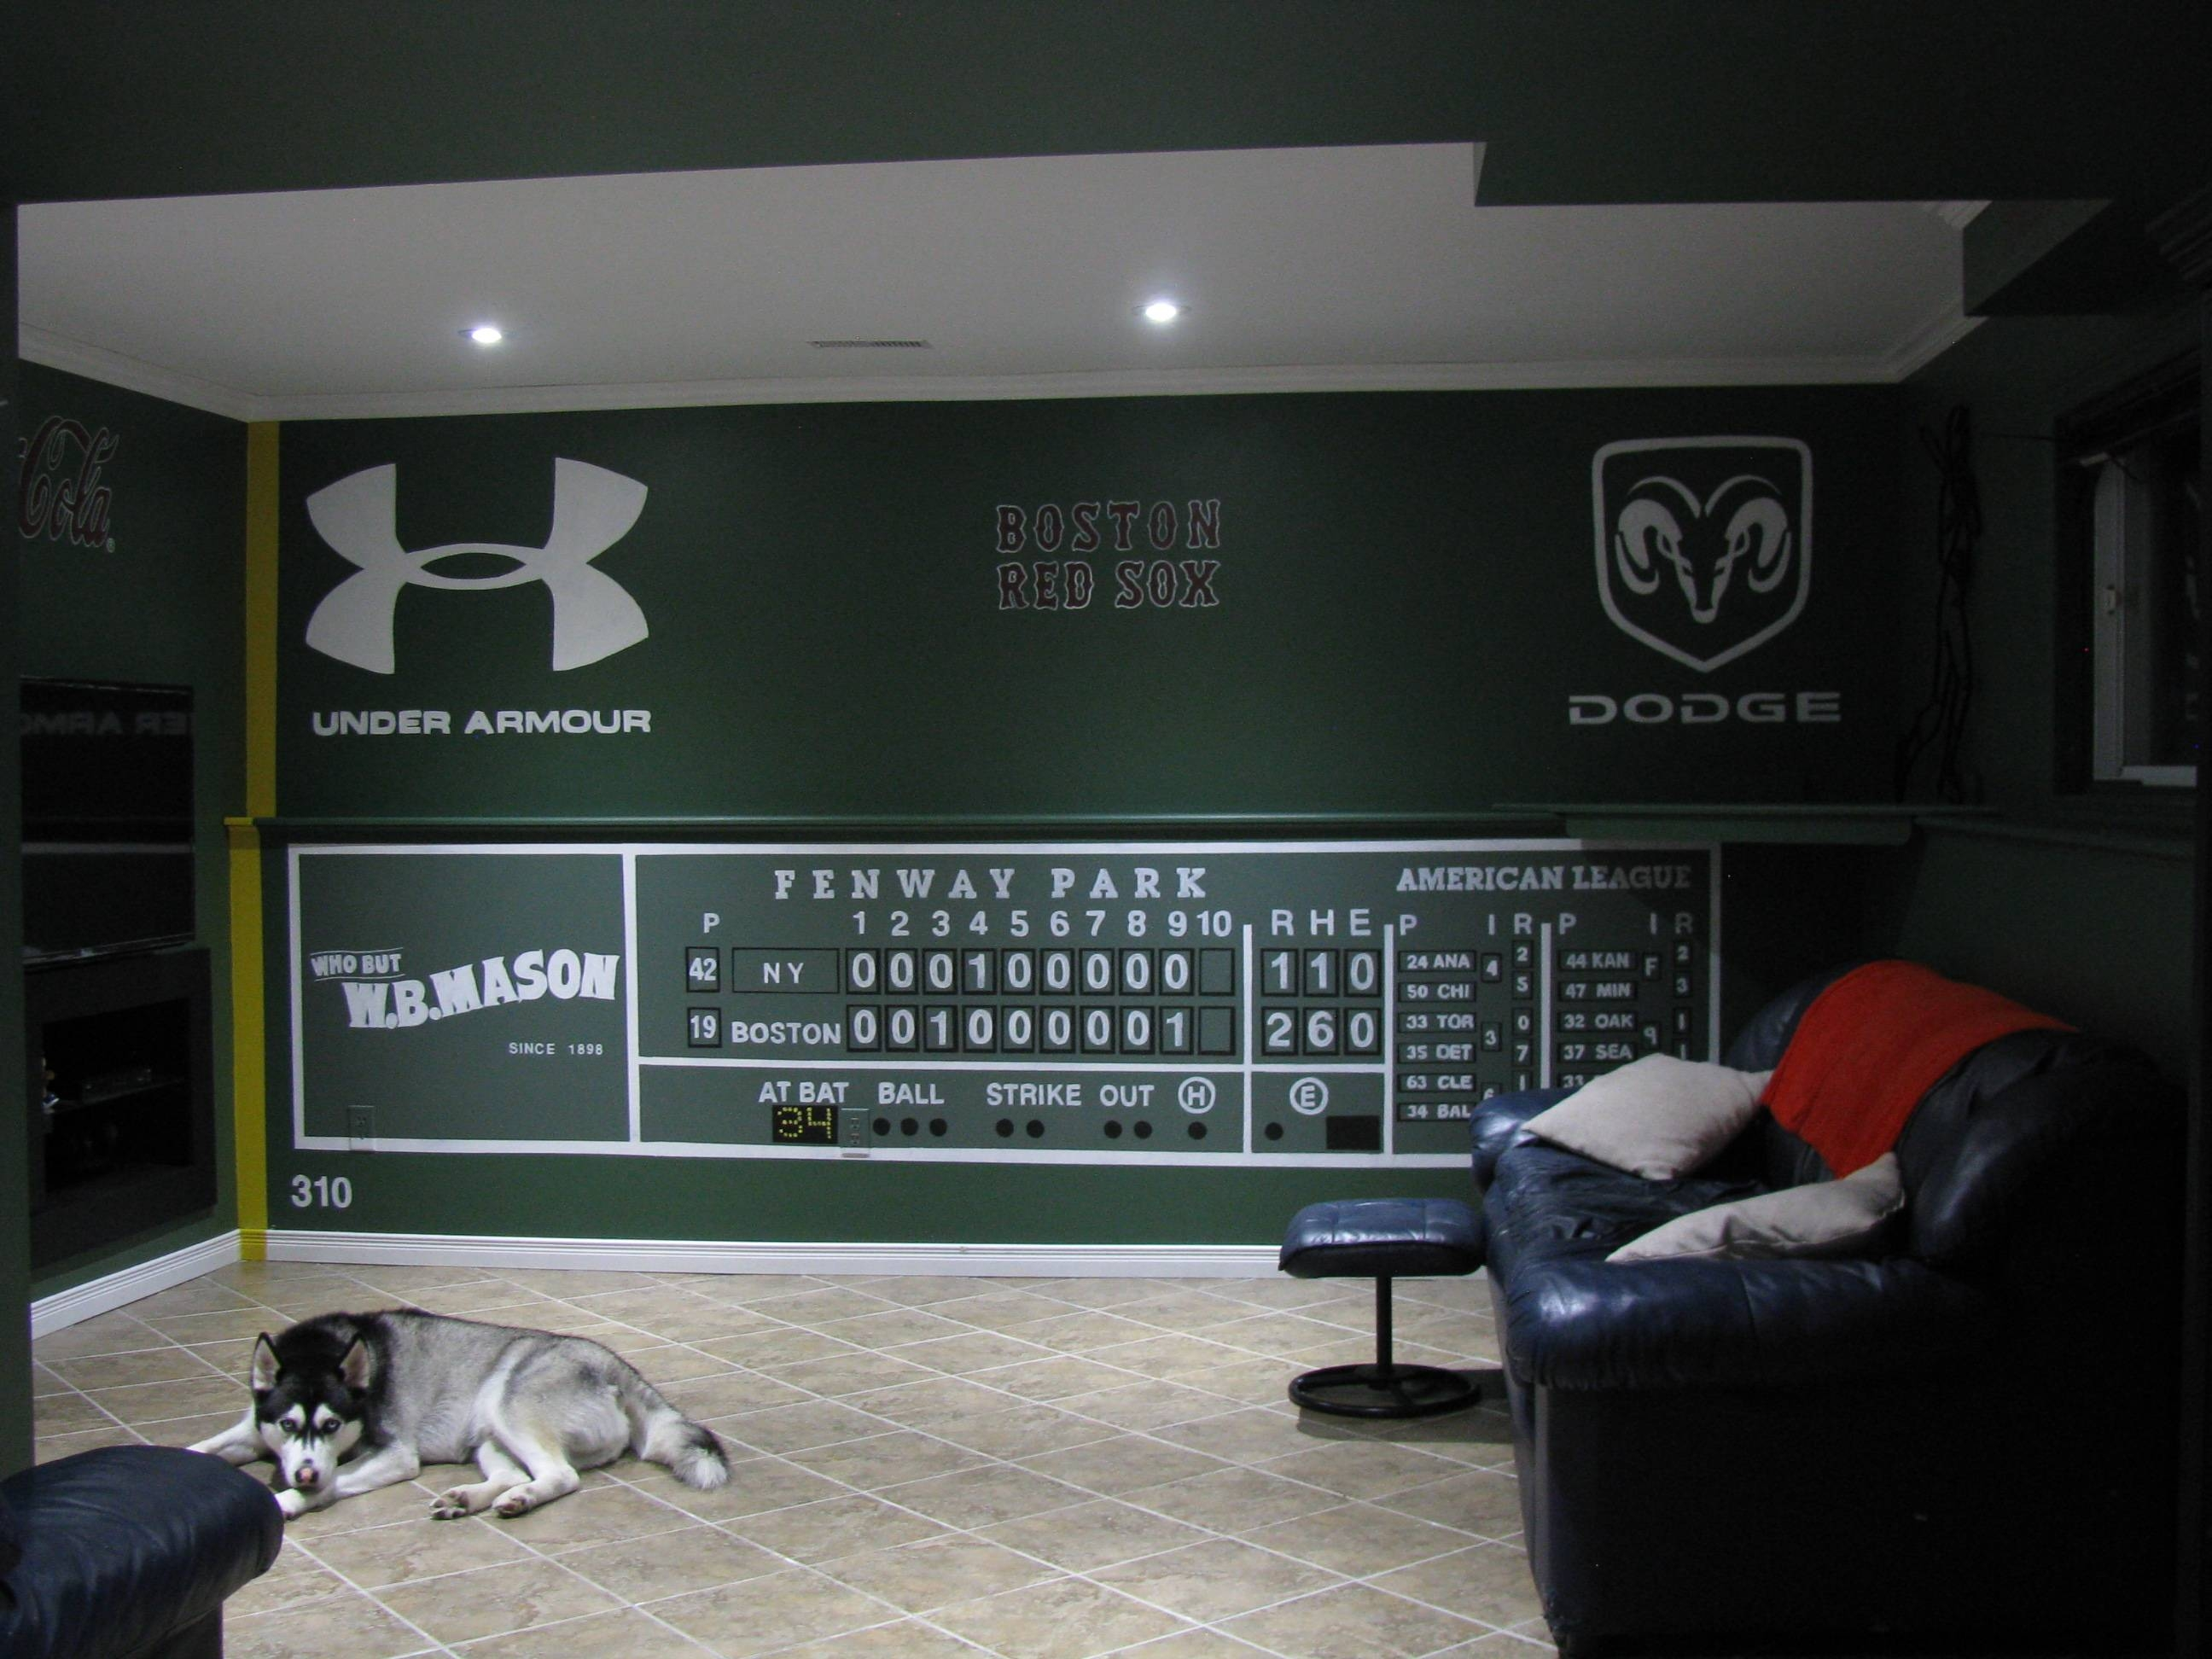 Jordans Red Sox Promotion 2017 Bedroom Fenway Green Monster Wall Regarding Most Up To Date Boston Red Sox Wall Art (View 20 of 25)